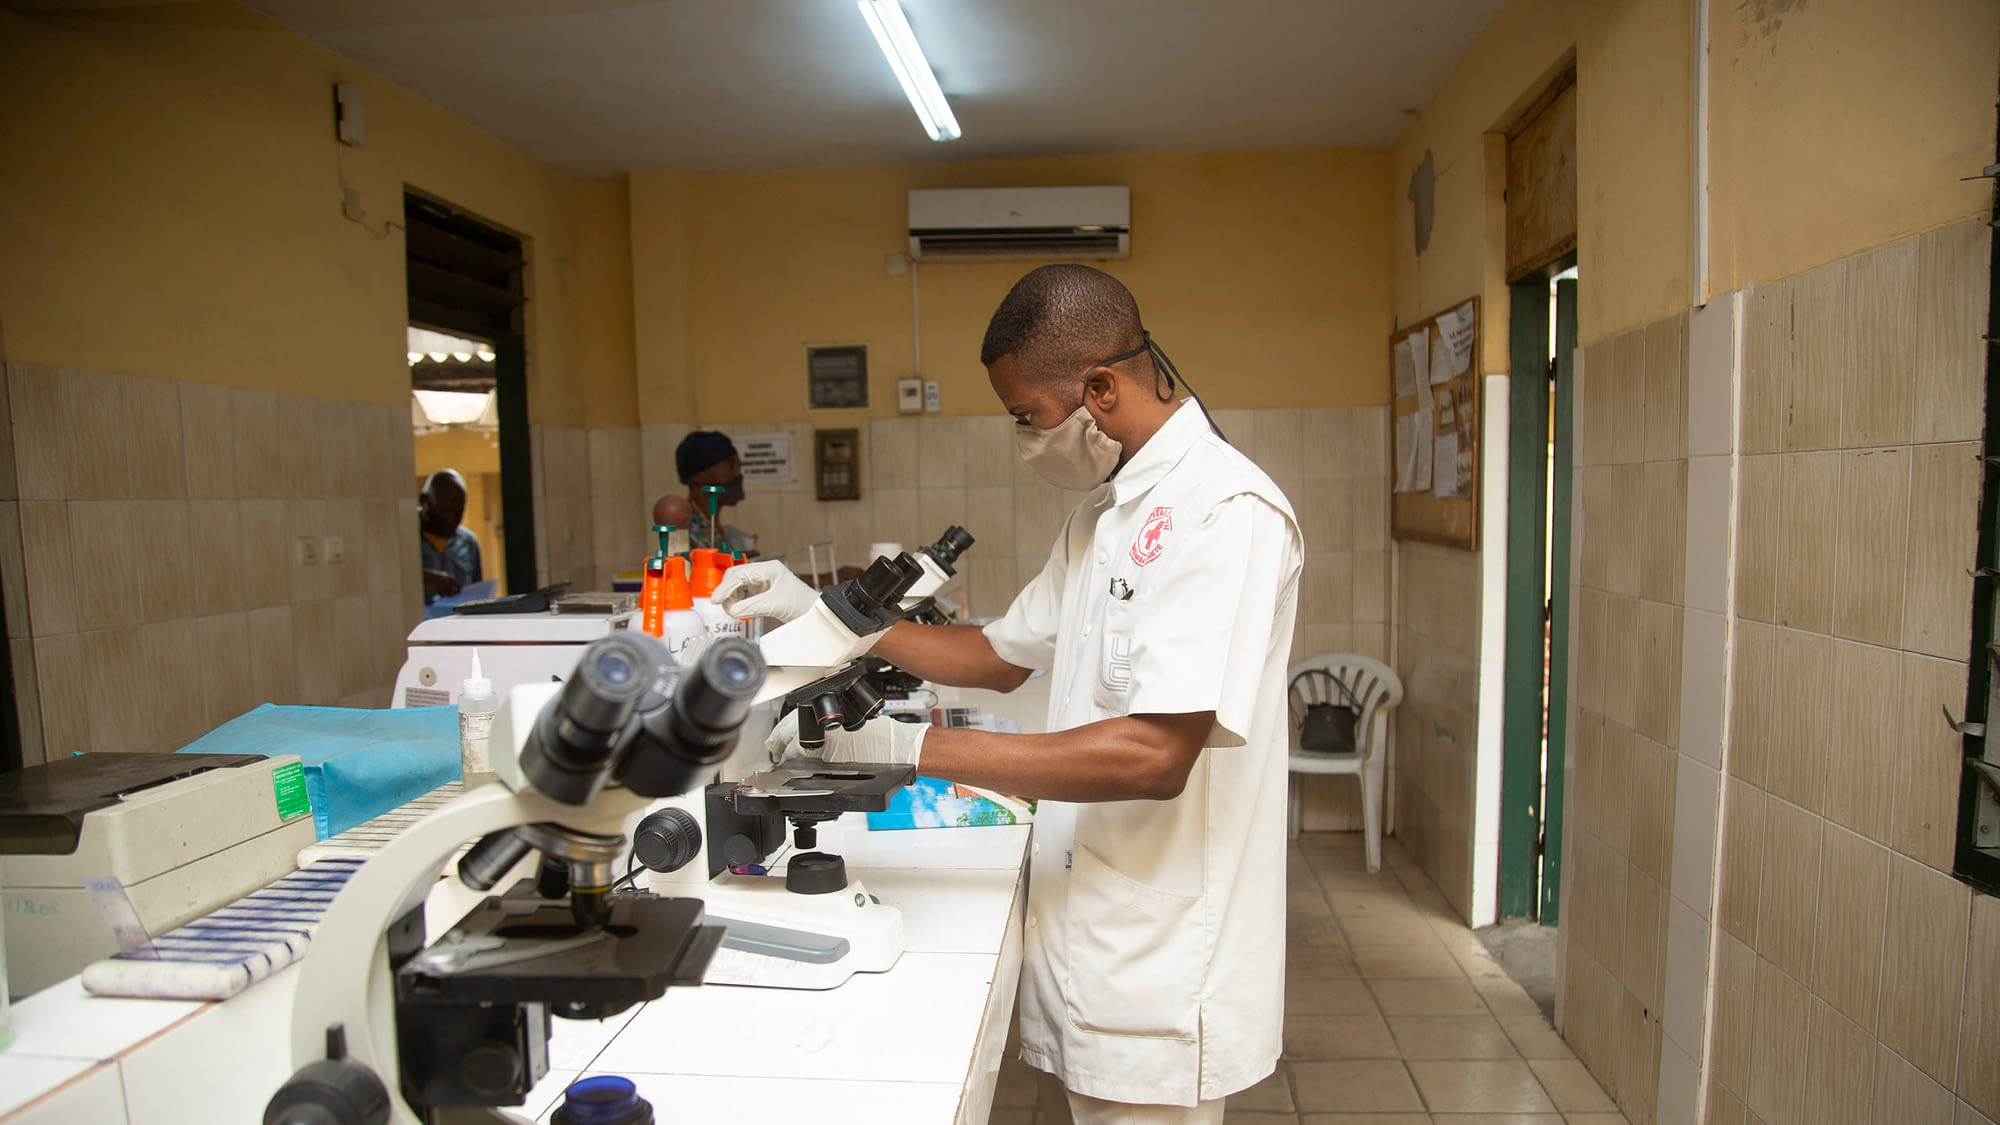 Healthcare worker with microscopes